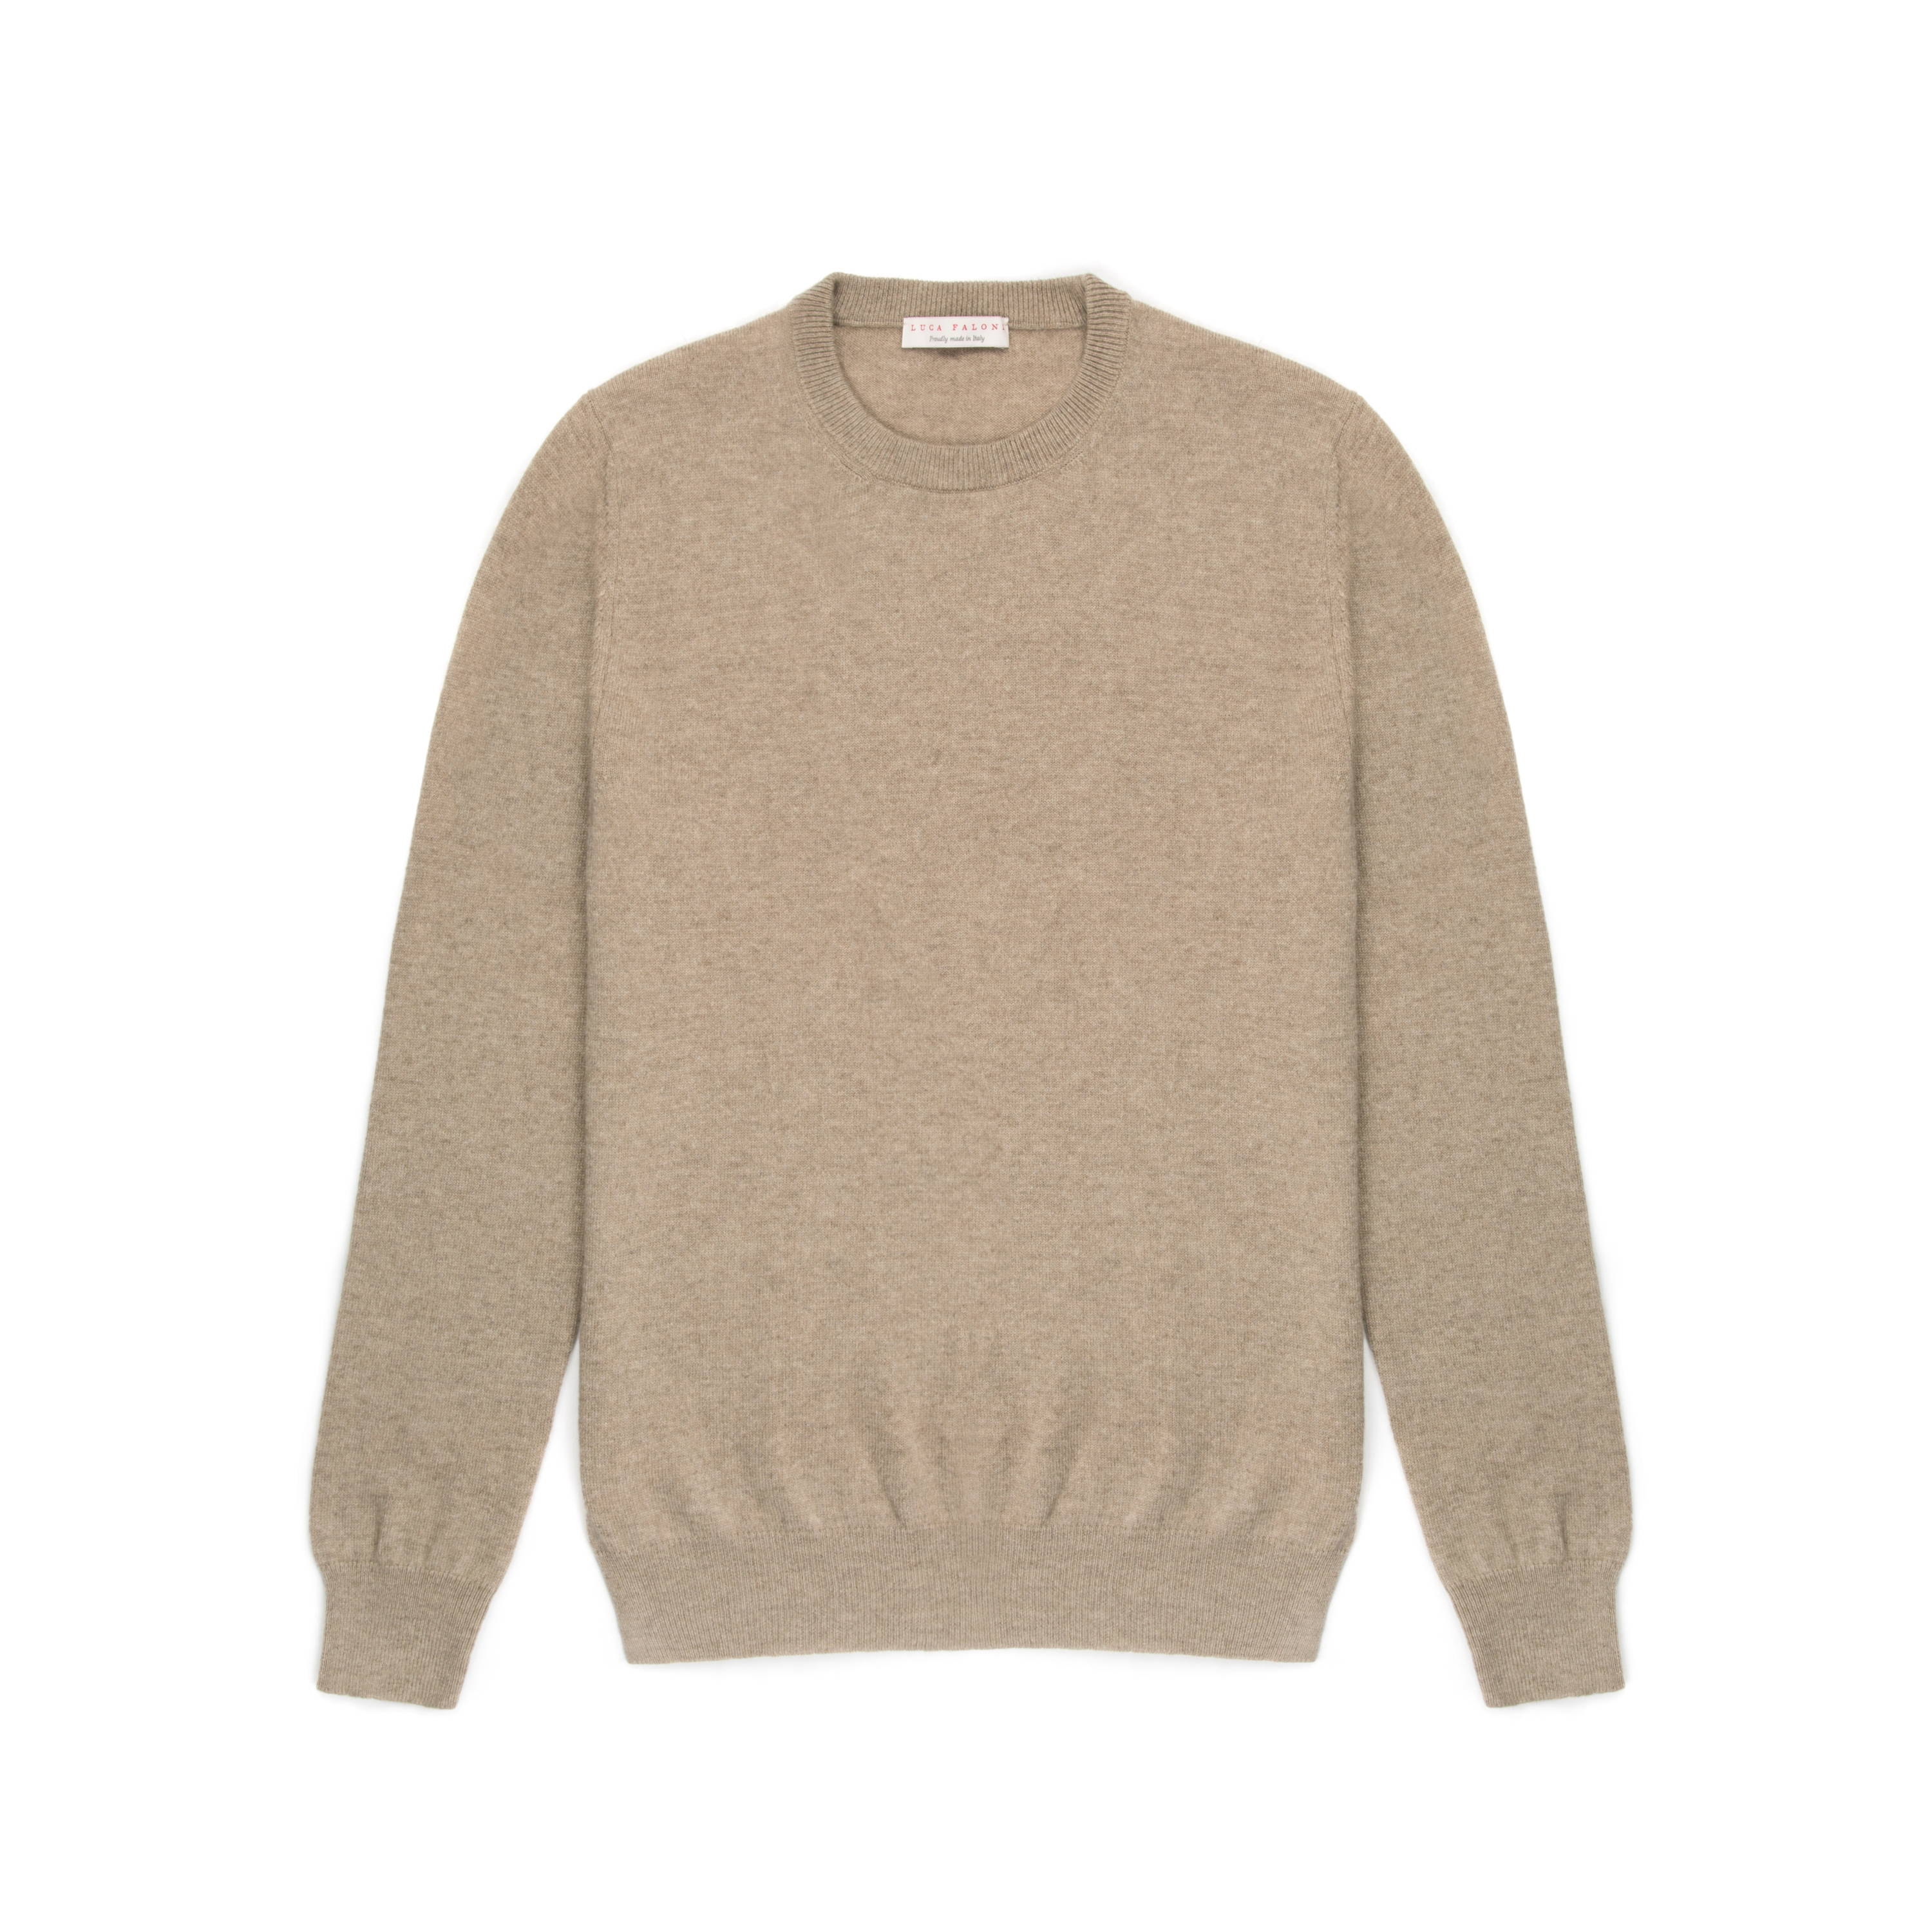 Luca Faloni  Camel beige pure Cashmere Crew Neck Sweater Made in Italy